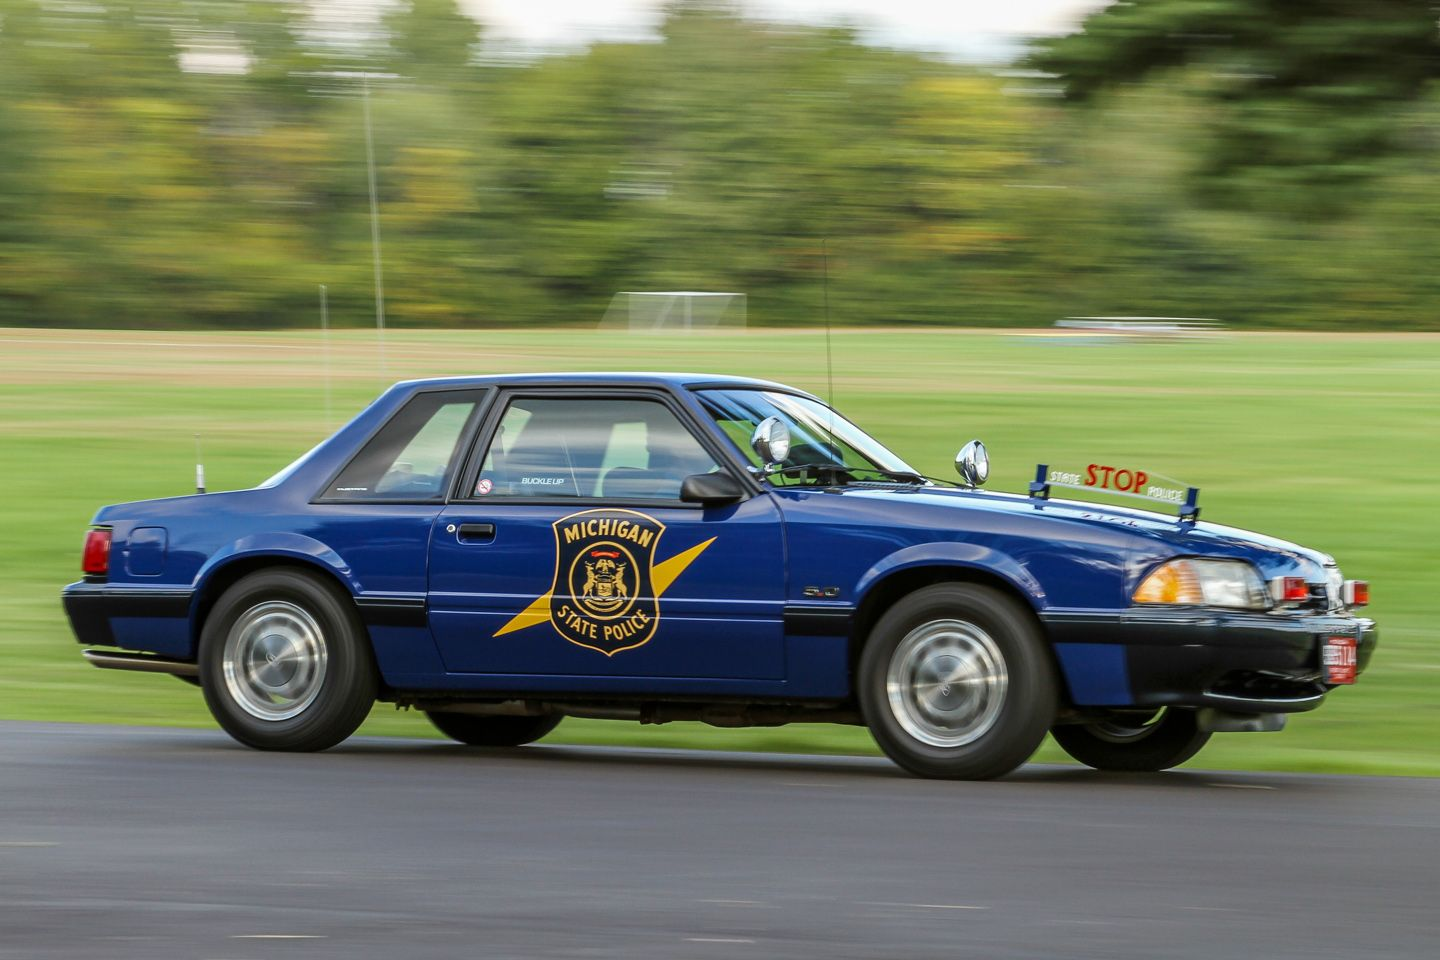 michigan state police 1992 ford mustang police cars mustang ford police police. Black Bedroom Furniture Sets. Home Design Ideas